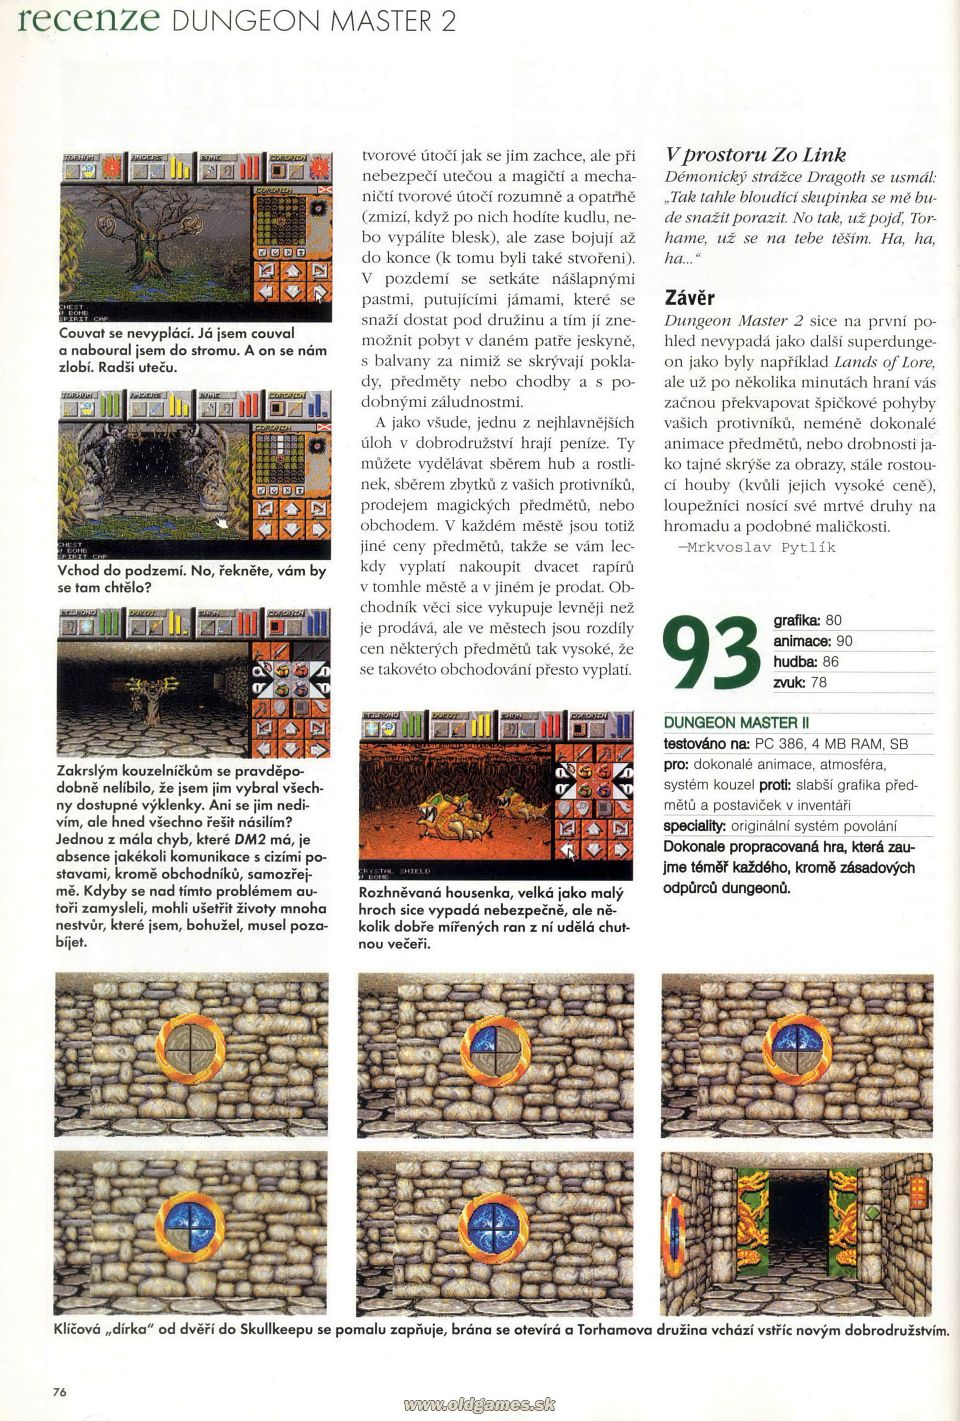 Dungeon Master II for PC Review published in Czech magazine 'Excalibur', Issue #50 October 1995, Page 76